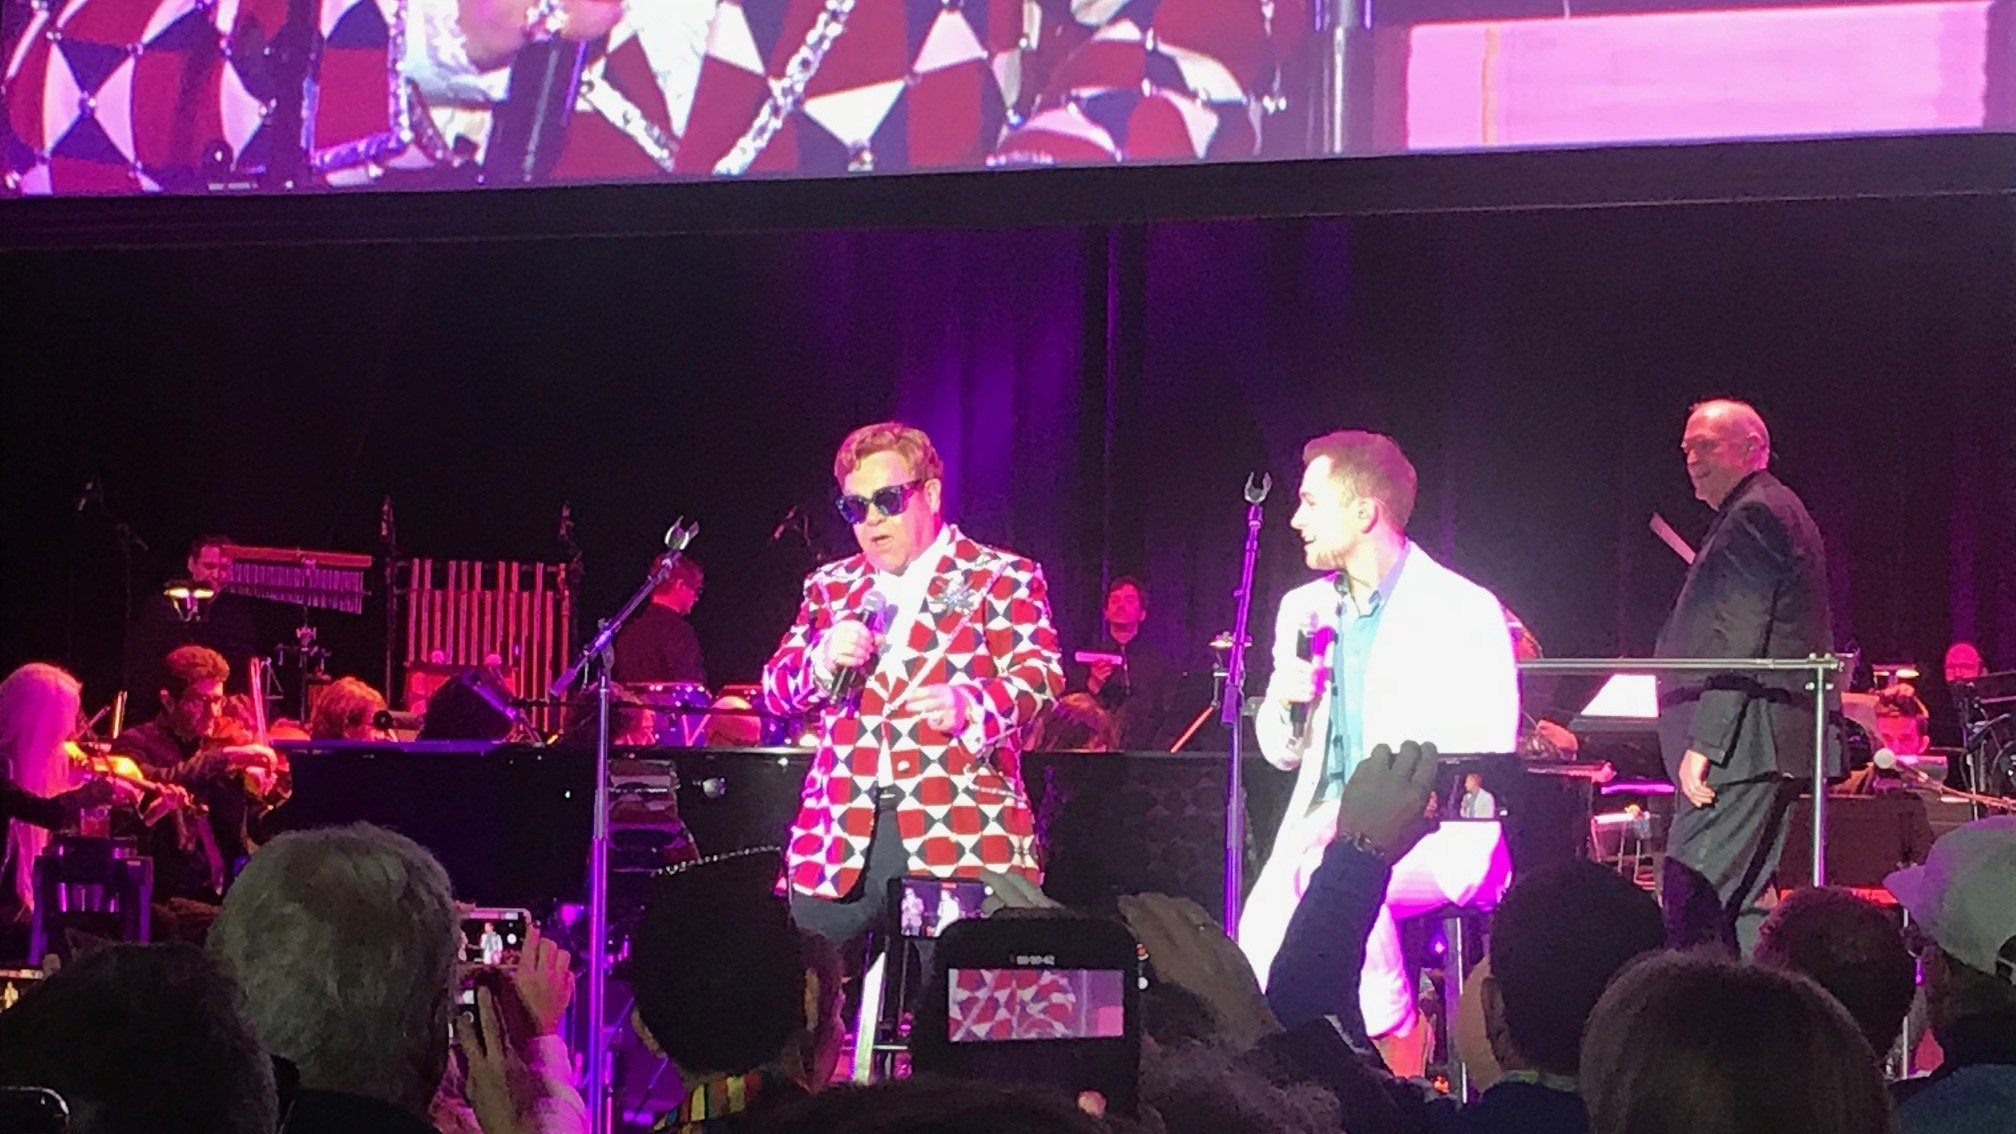 Elton John and Taron Egerton's  '(I'm Gonna) Love Me Again' shines at 'Rocketman' screening